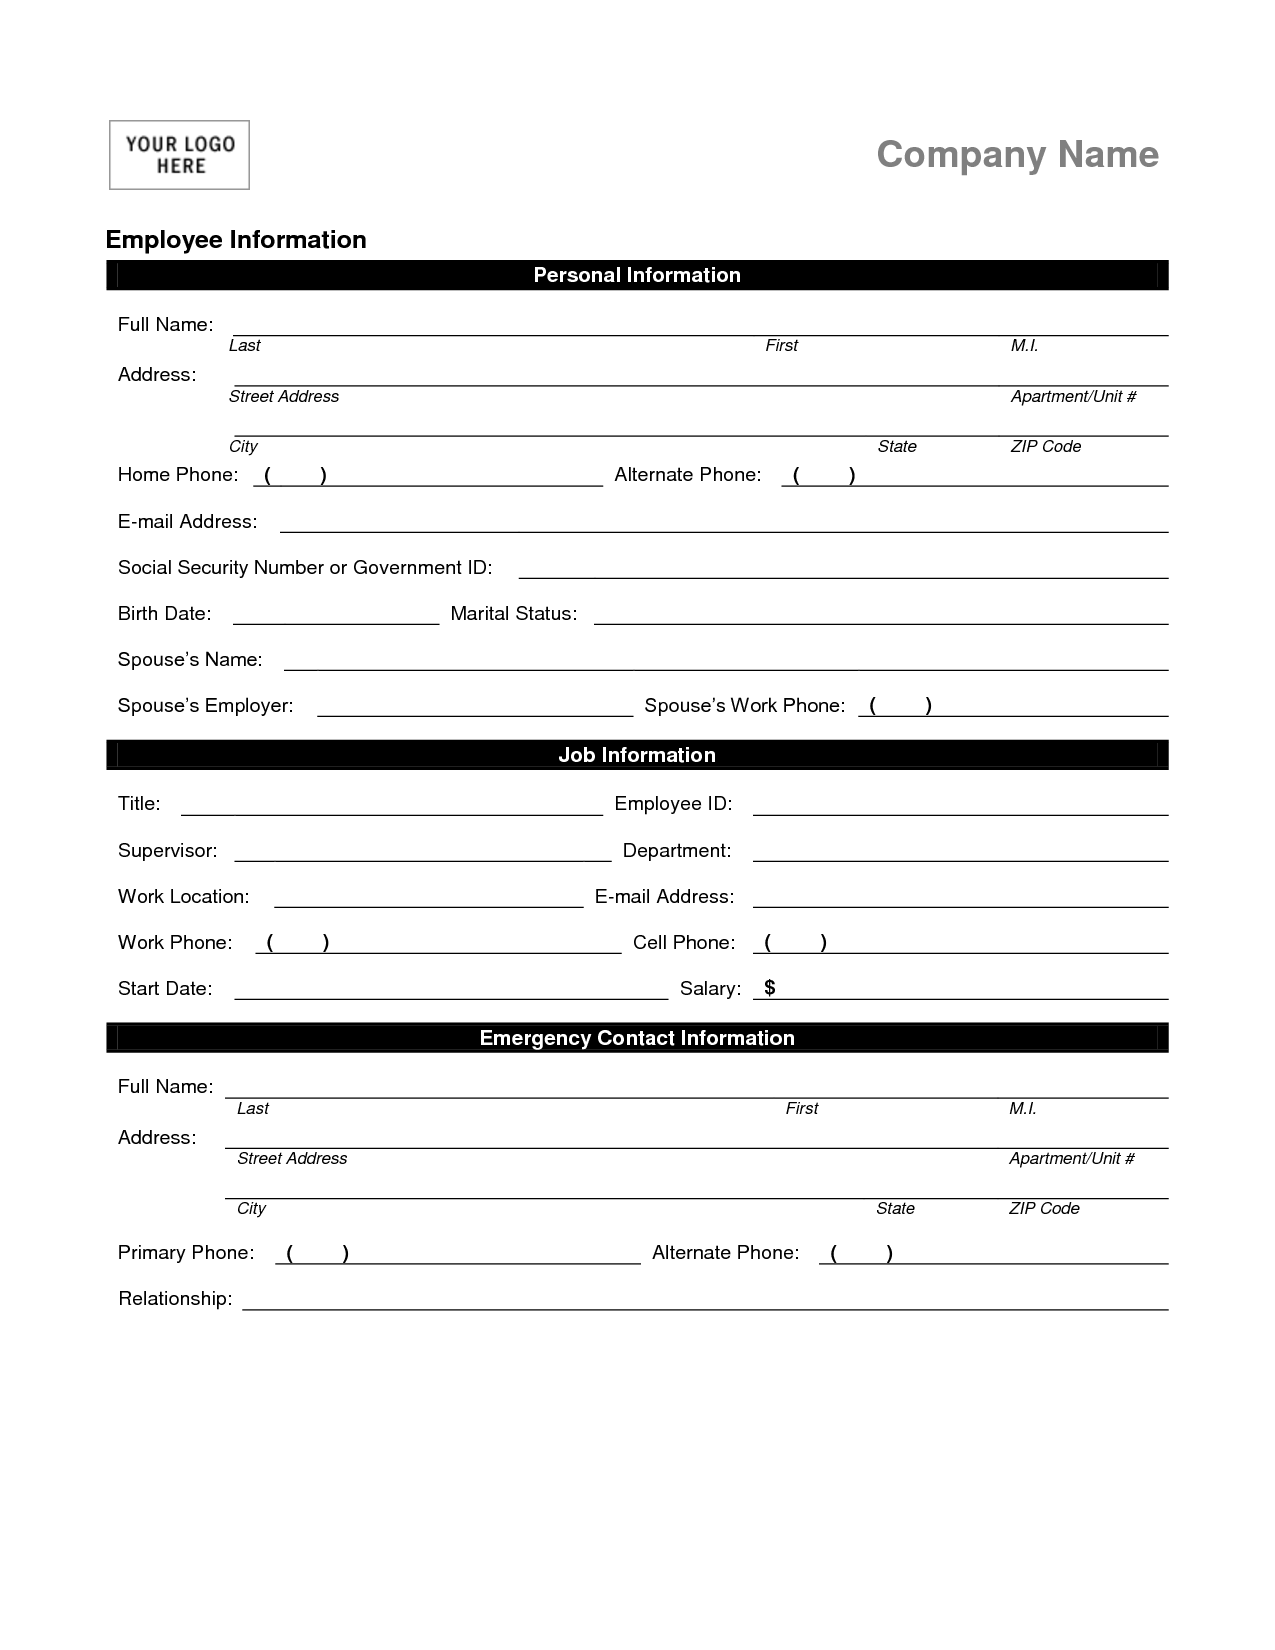 Basic Information Form Template Filename – down town ken more